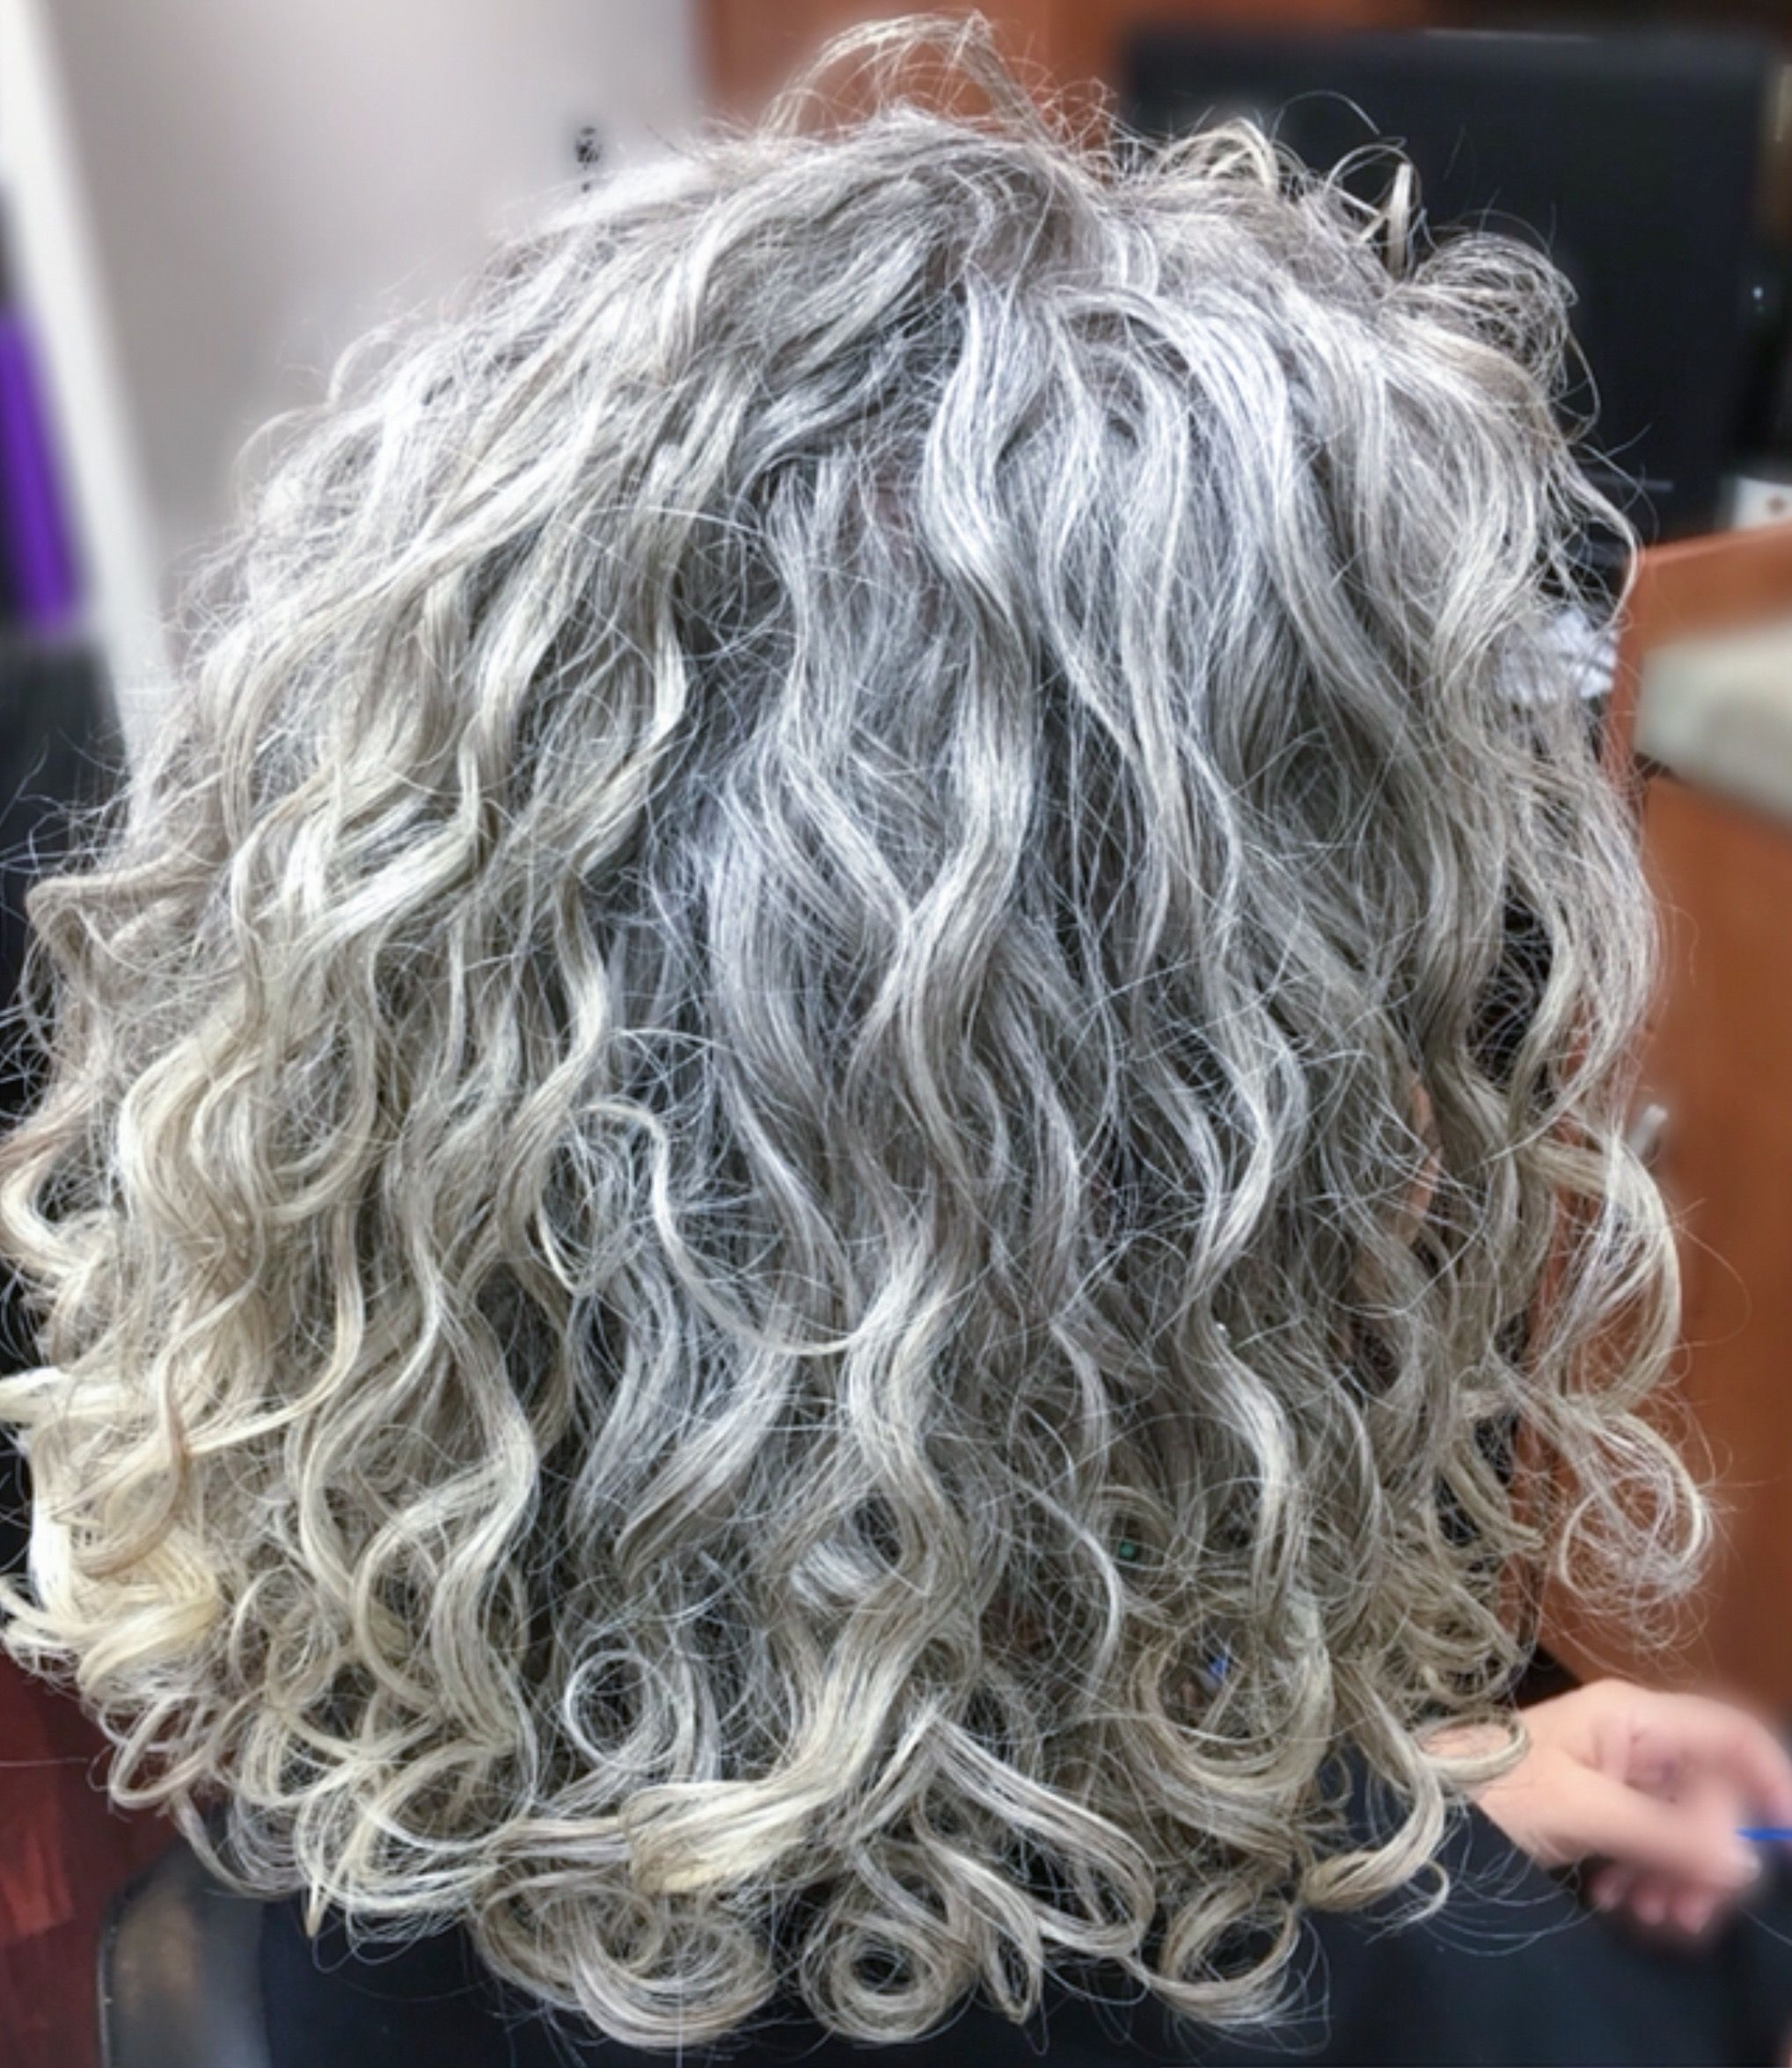 Thick Wavy Curly Natural Grey Hair I Love The Colour And Texture Of Her Hair Hair Styles Natural Gray Hair Grey Curly Hair